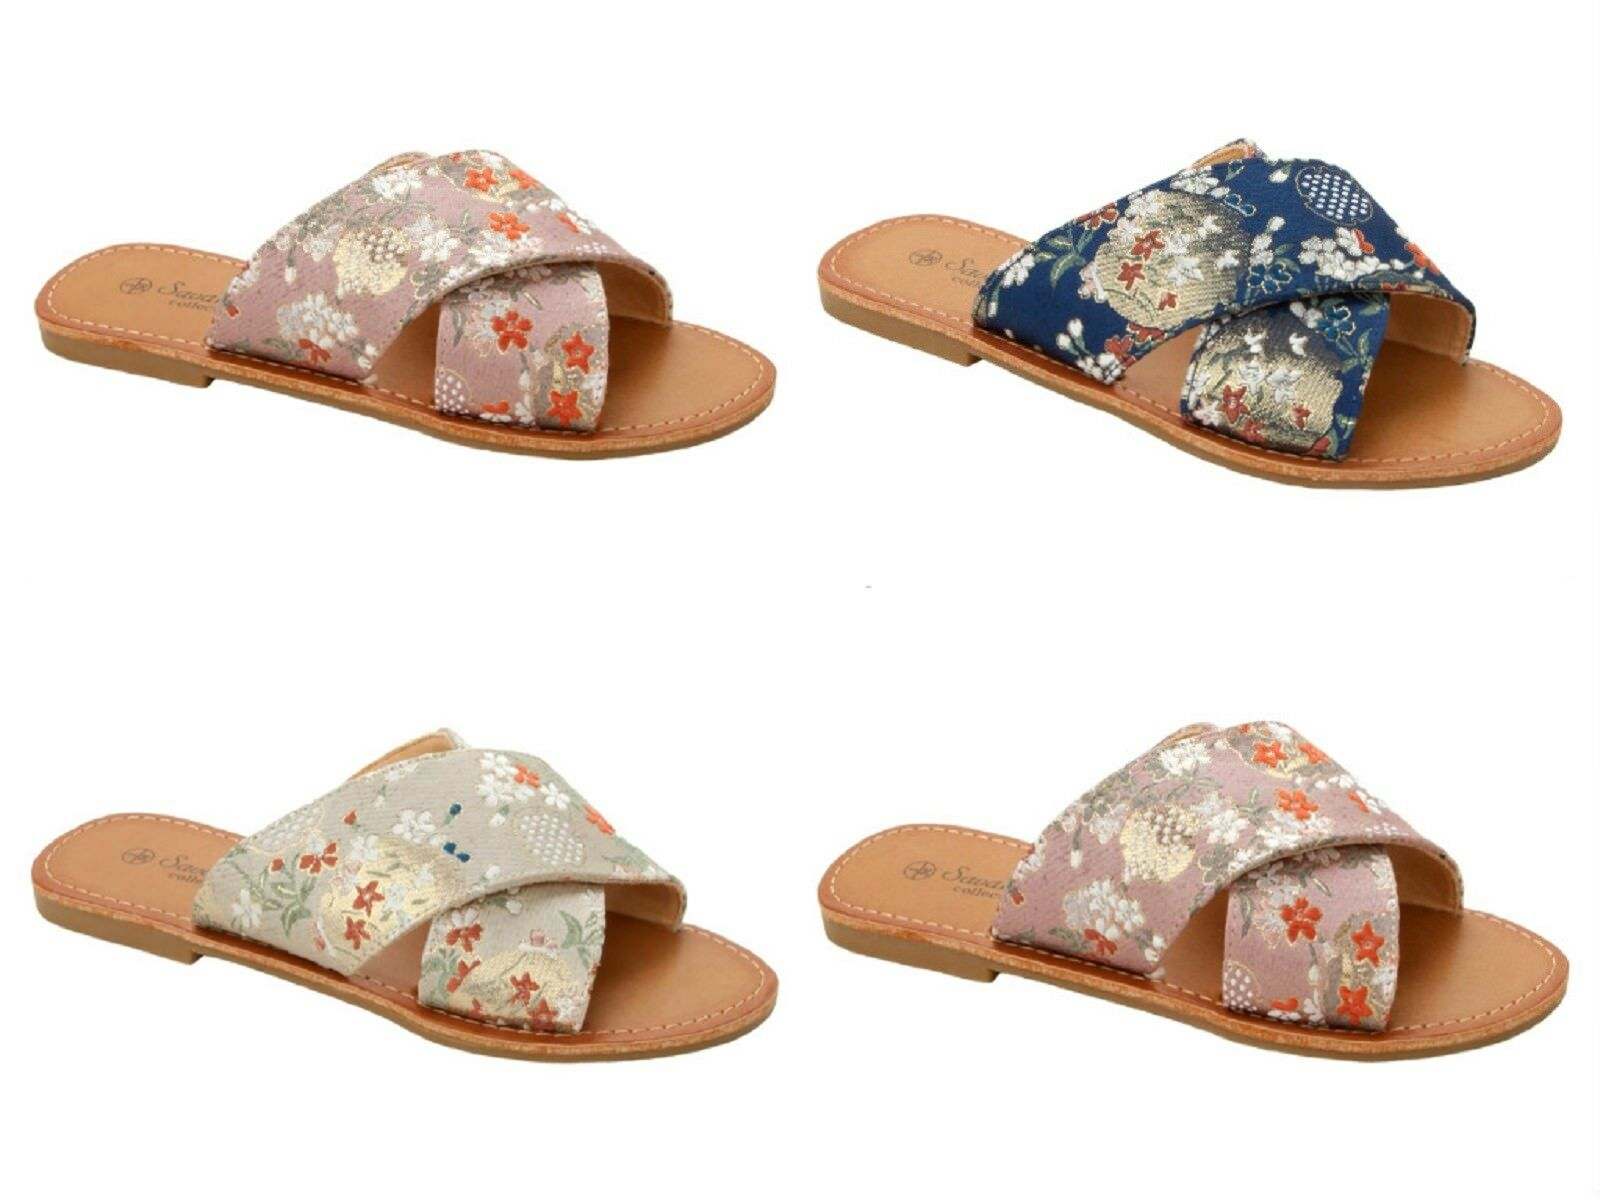 WOMENS FLORAL EMBROIDERED FLIP FLOP SLIDERS MULES 3-8 SUMMER SANDALS LADIES SIZE 3-8 MULES 1ca1fa